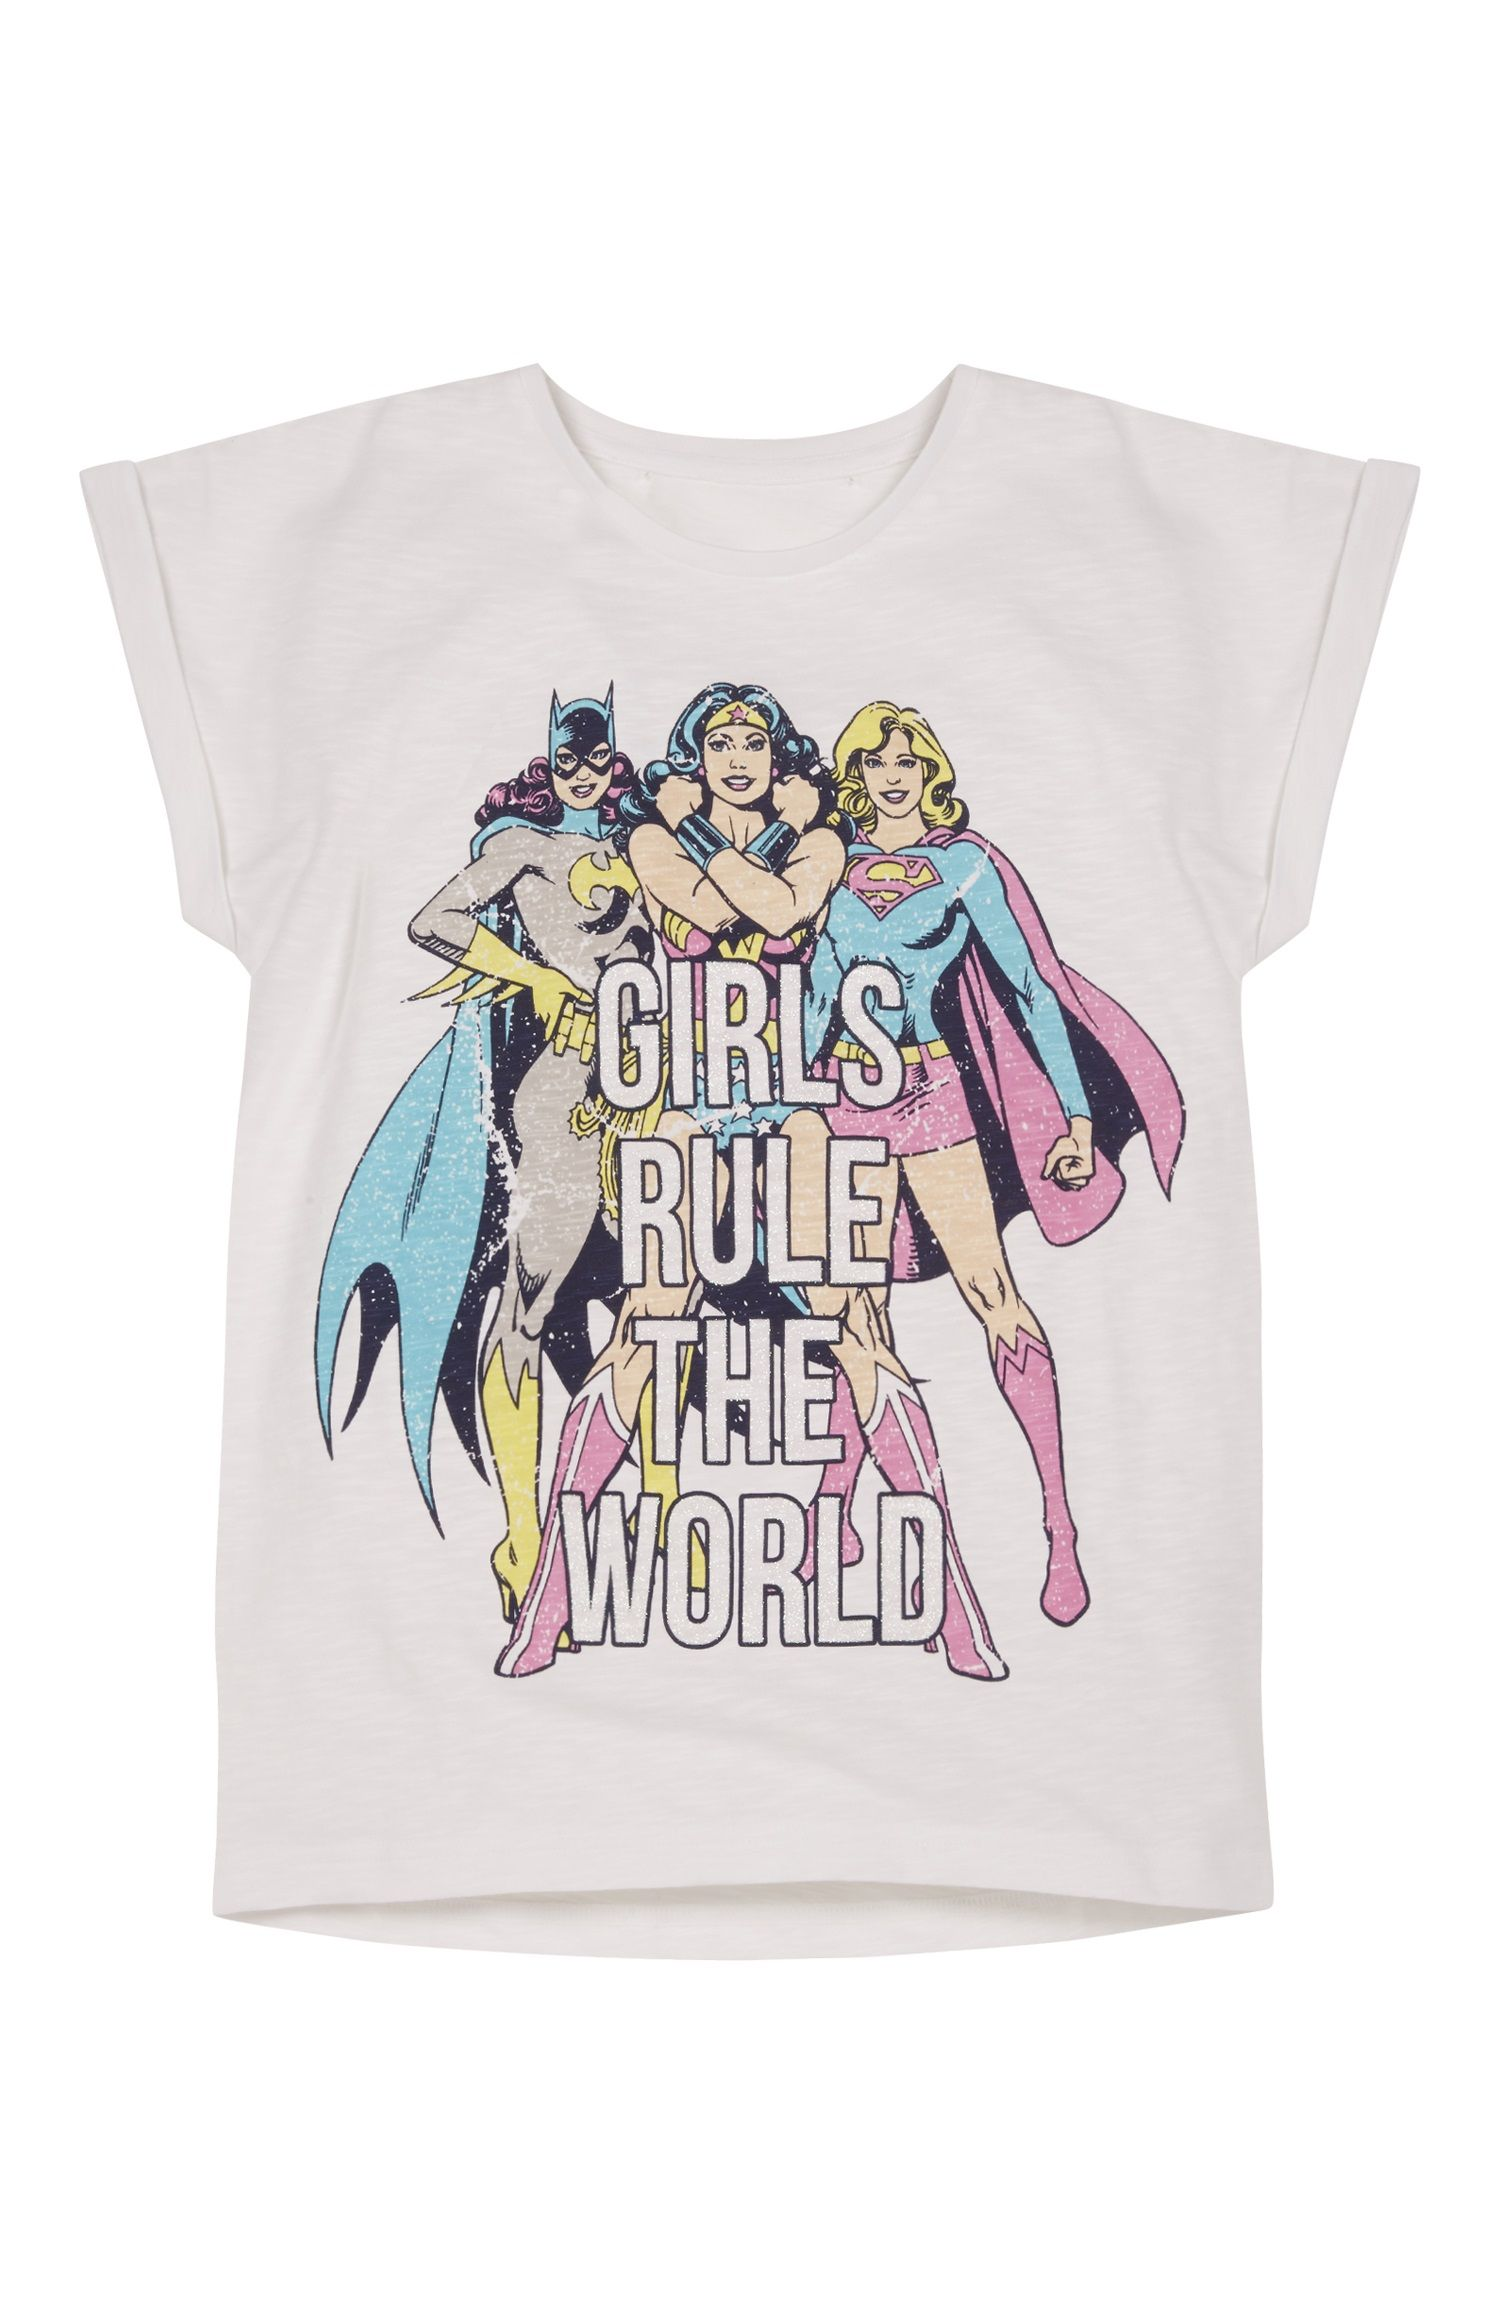 b5b6069203835 Primark - Girls Rule The World Superhero T-Shirt Batgirl Supergirl ...